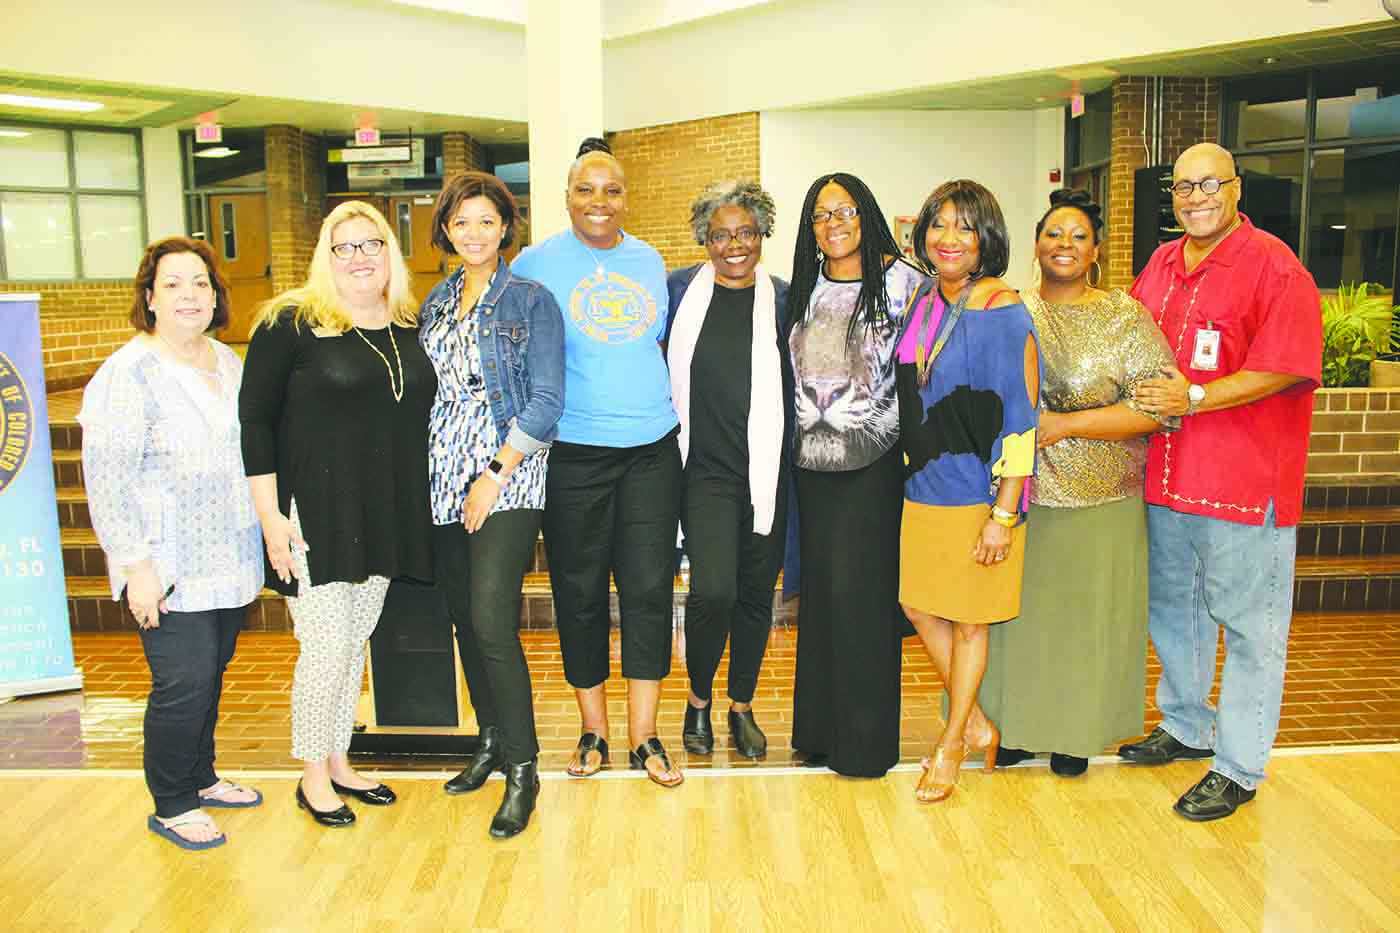 L-R, School Board member Terry Krassner, ELC's Lindsay Carson, Dir. of Education Leah McRae, NAACP President Maria L. Scruggs, Dr. Noliwe Rooks, Faye Watson, Trenia Cox, Shyla Sams and PTC's Lavender at Pinellas Technical College Saturday, April 7.